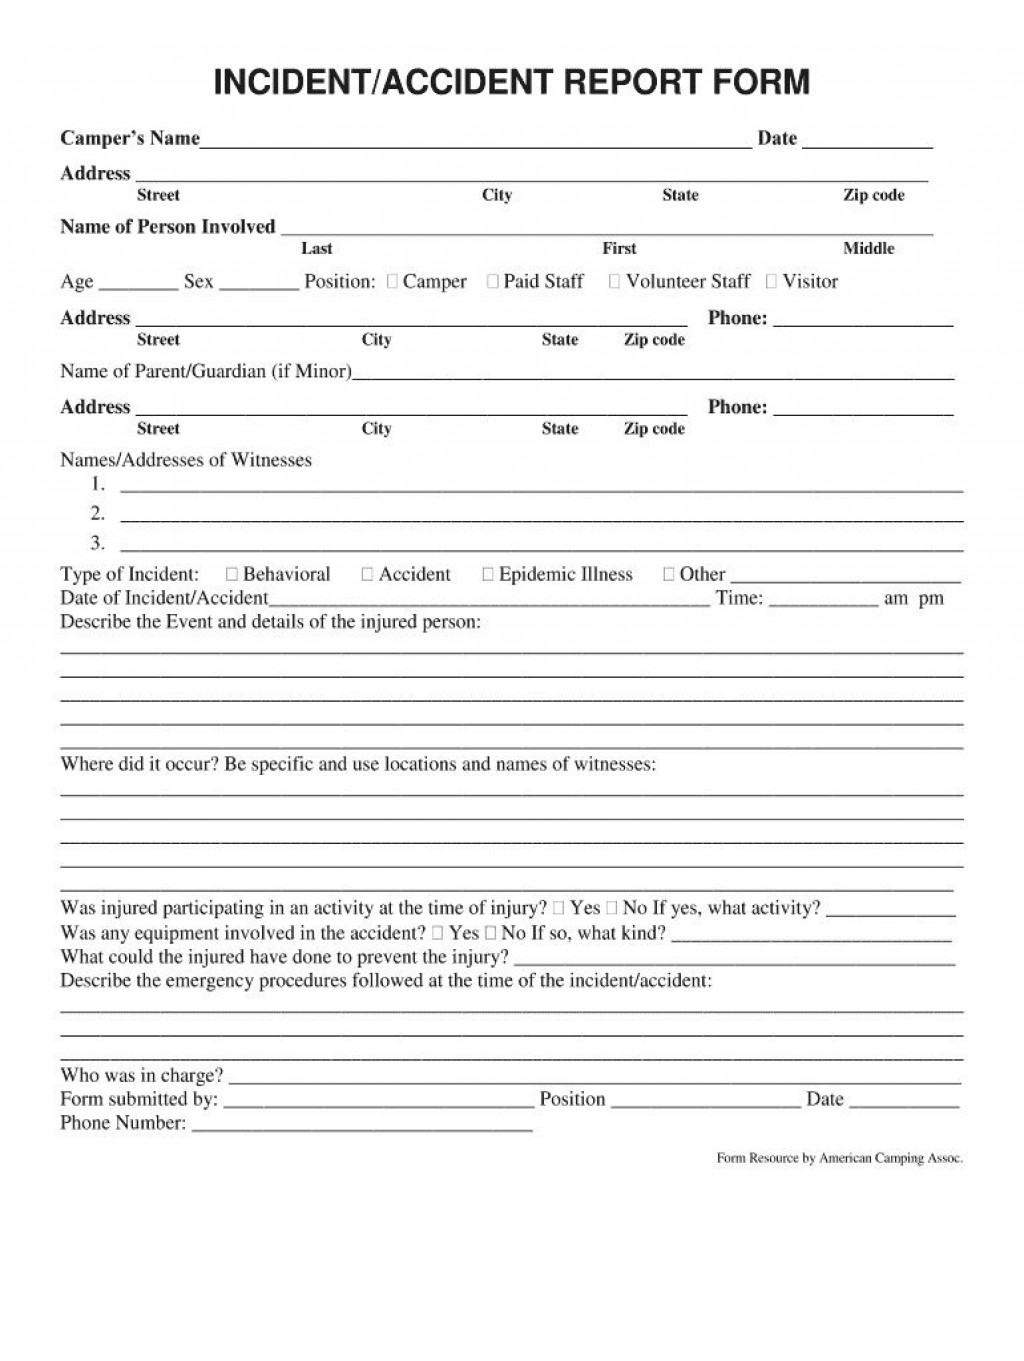 002 Dreaded Accident Report Form Template Picture  Incident Victoria Injury FreeLarge